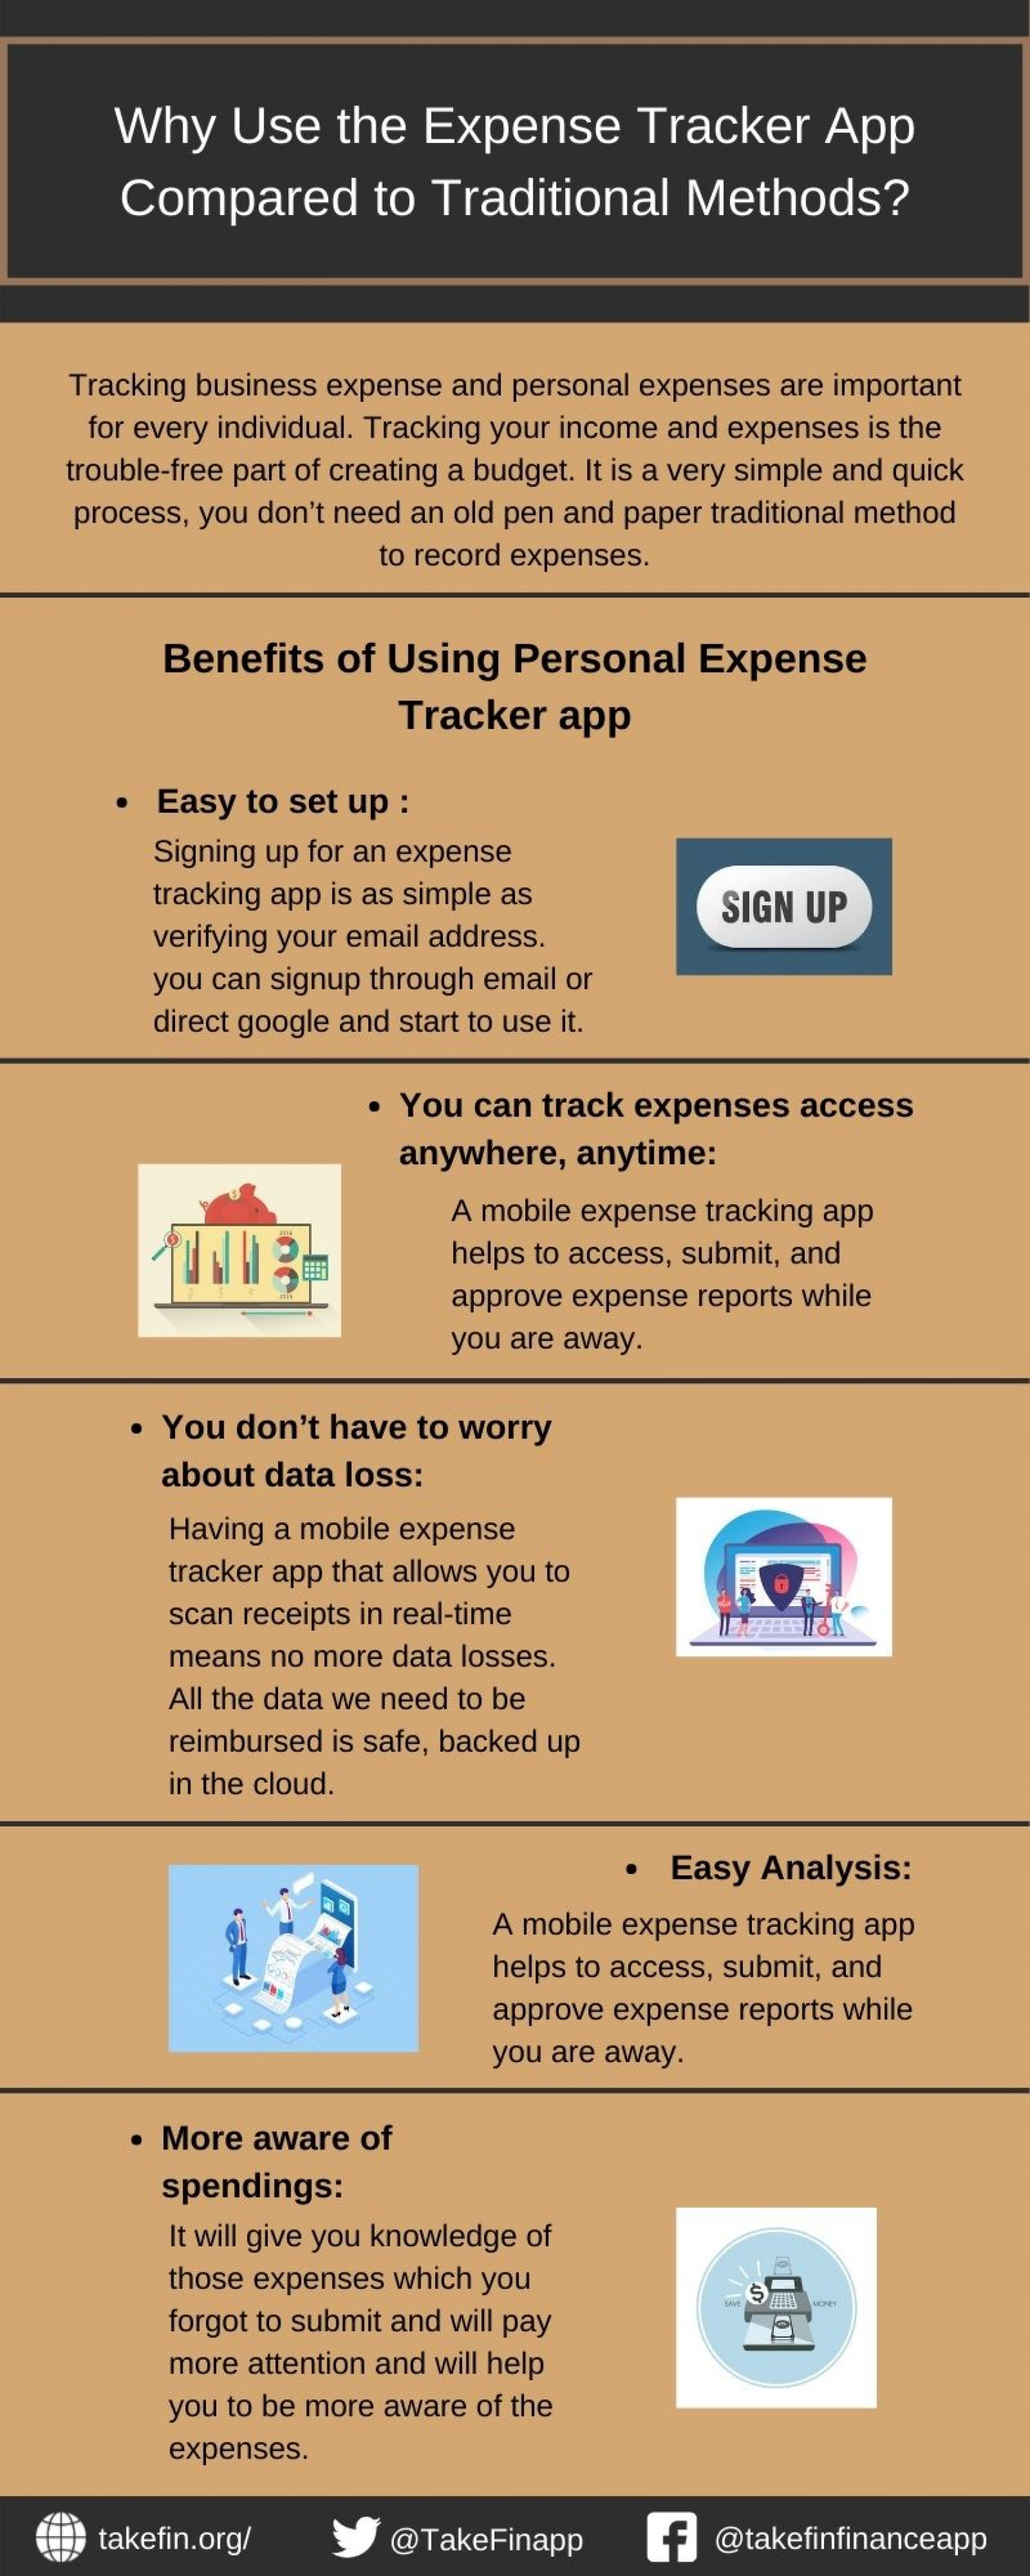 Why Use the Expense Tracker App Compared to Traditional Methods? Infographic